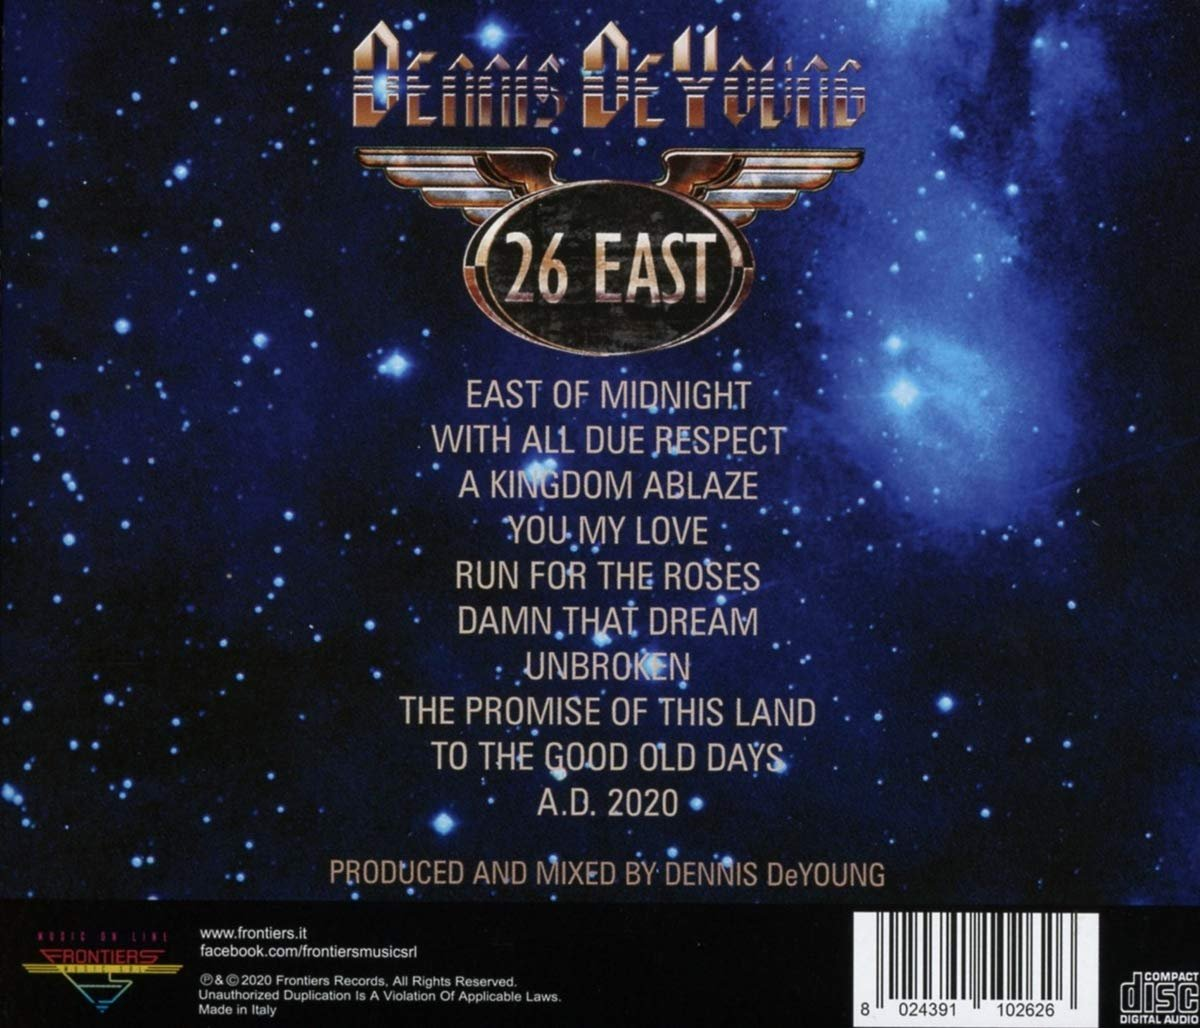 Back cover image